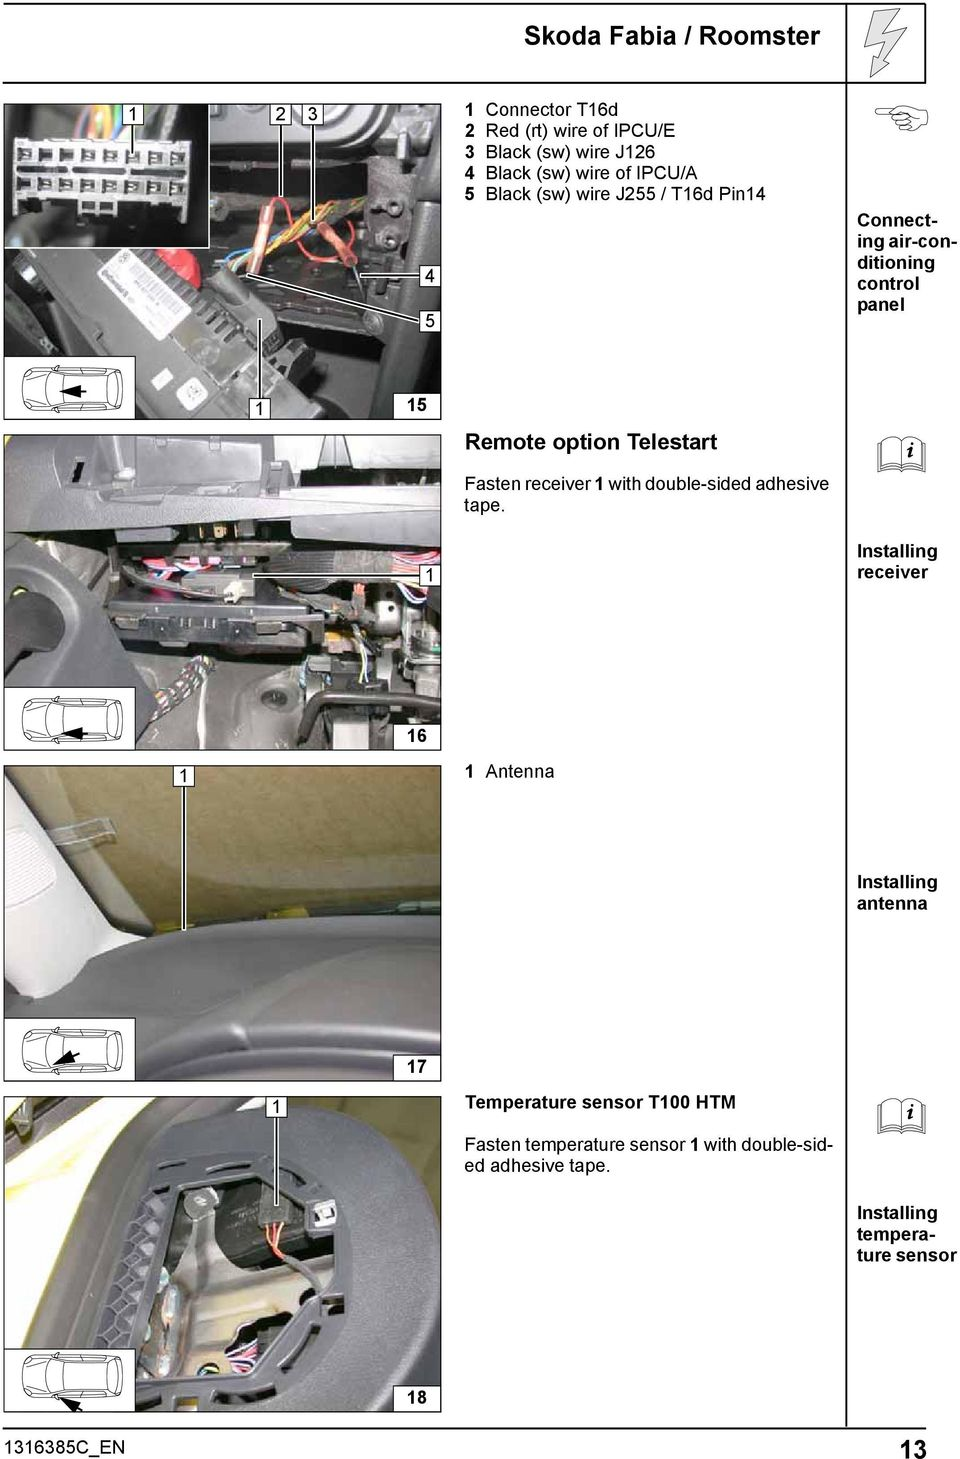 Always Follow All Webasto Installation And Repair Instructions 2004 Volkswagen Jetta Coolant Ing Fasten Receiver With Double Sided Adhesive Tape